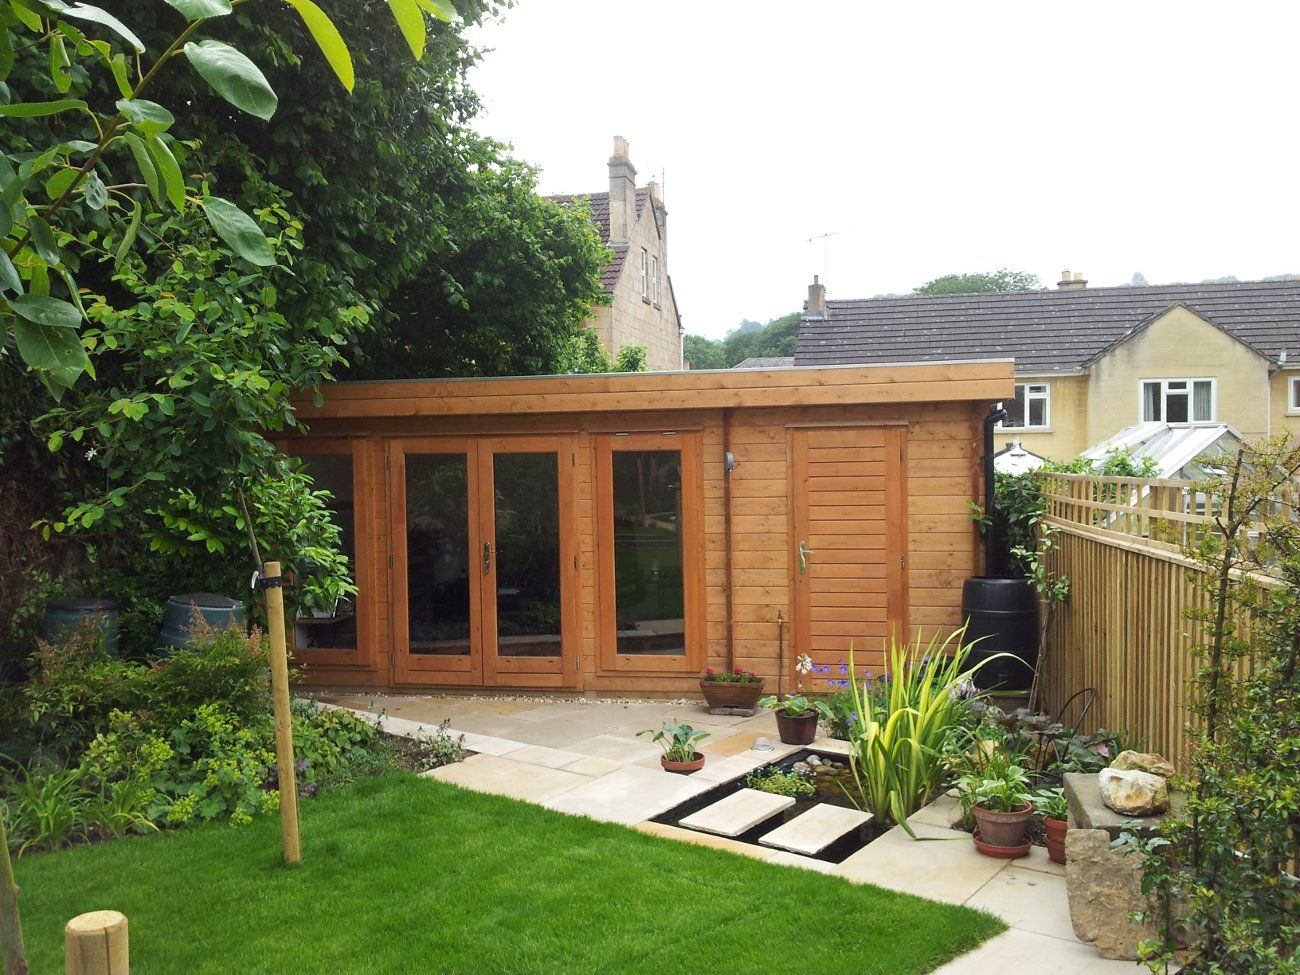 Summer house ideas google search garden offices sheds for Garden office and shed